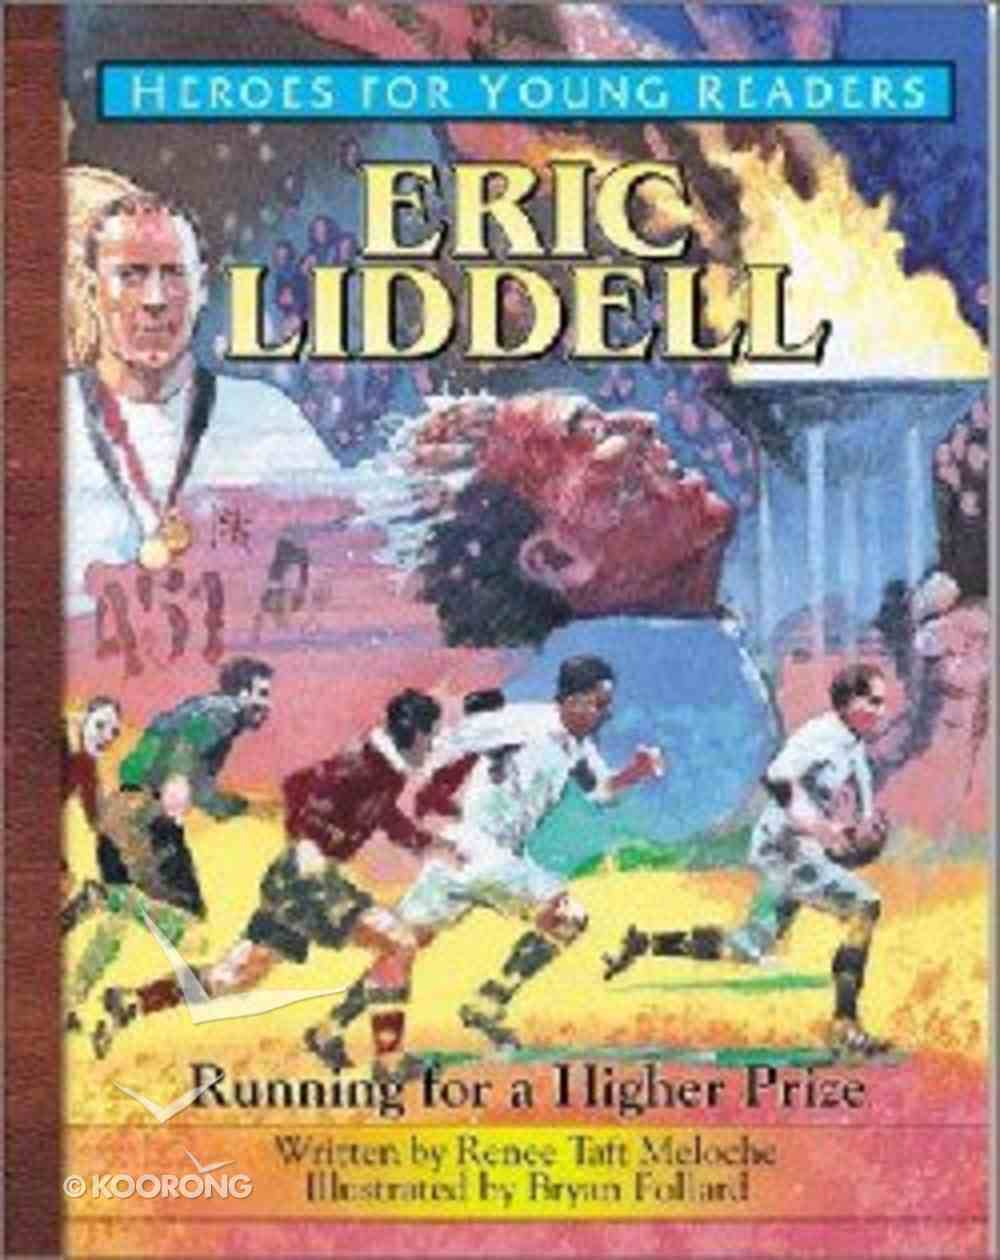 Eric Liddell - Running For a Higher Prize (Heroes For Young Readers Series) Hardback